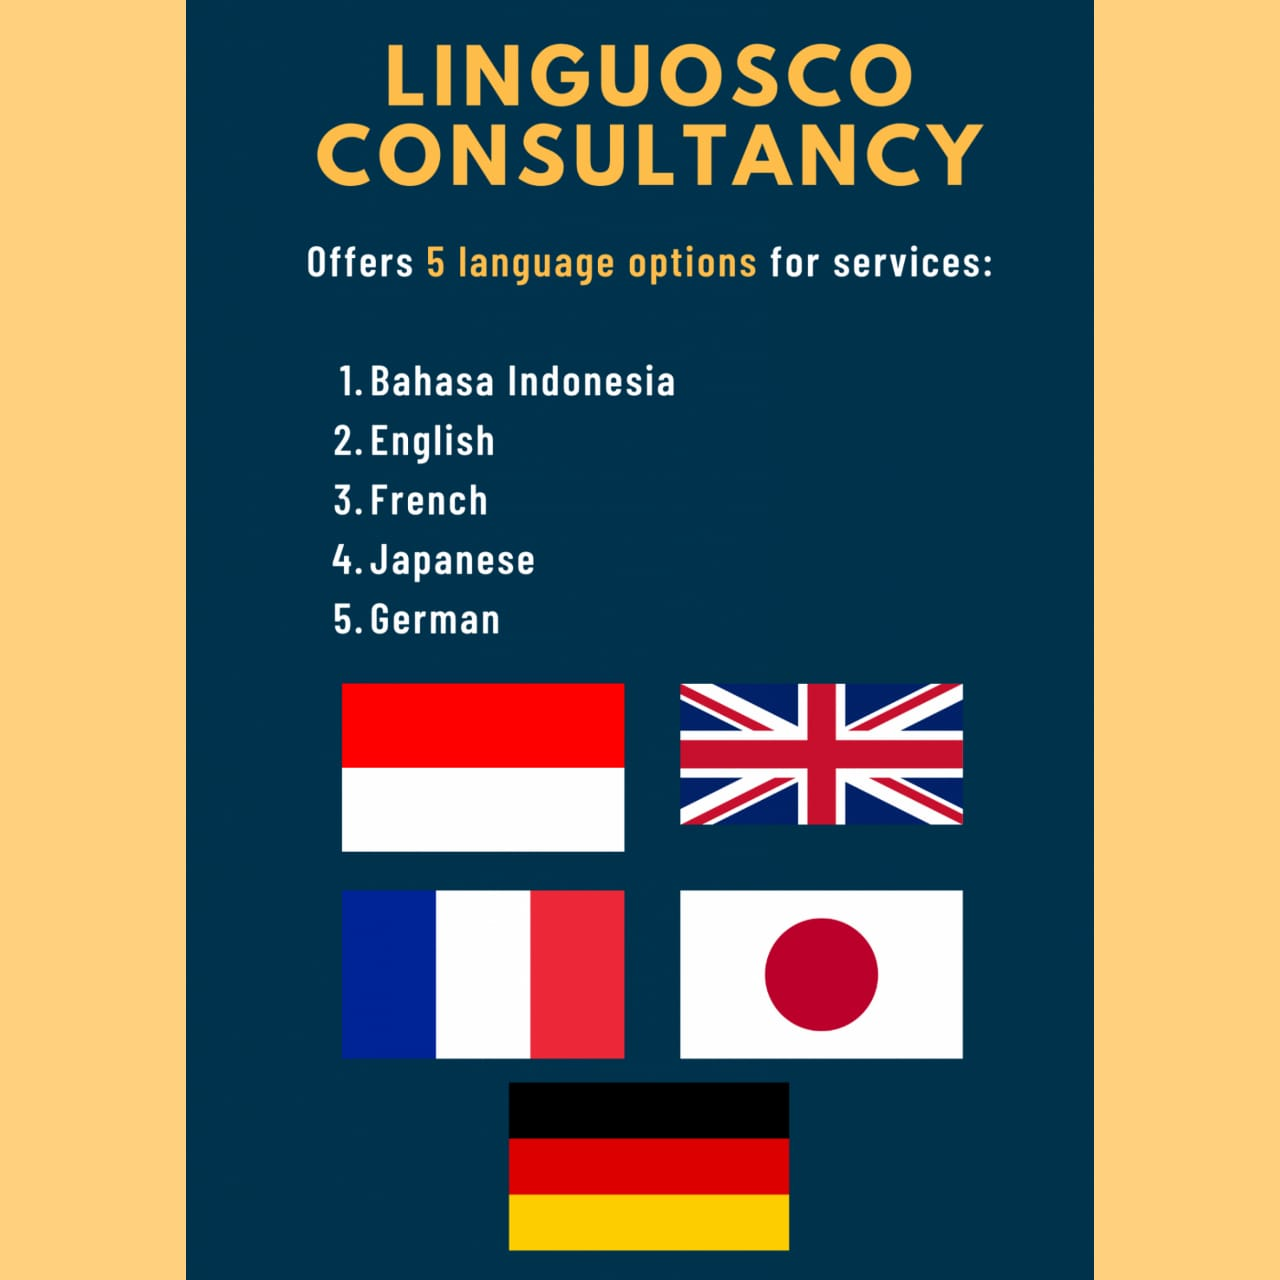 Linguosco - Delivering Crafted Excellence